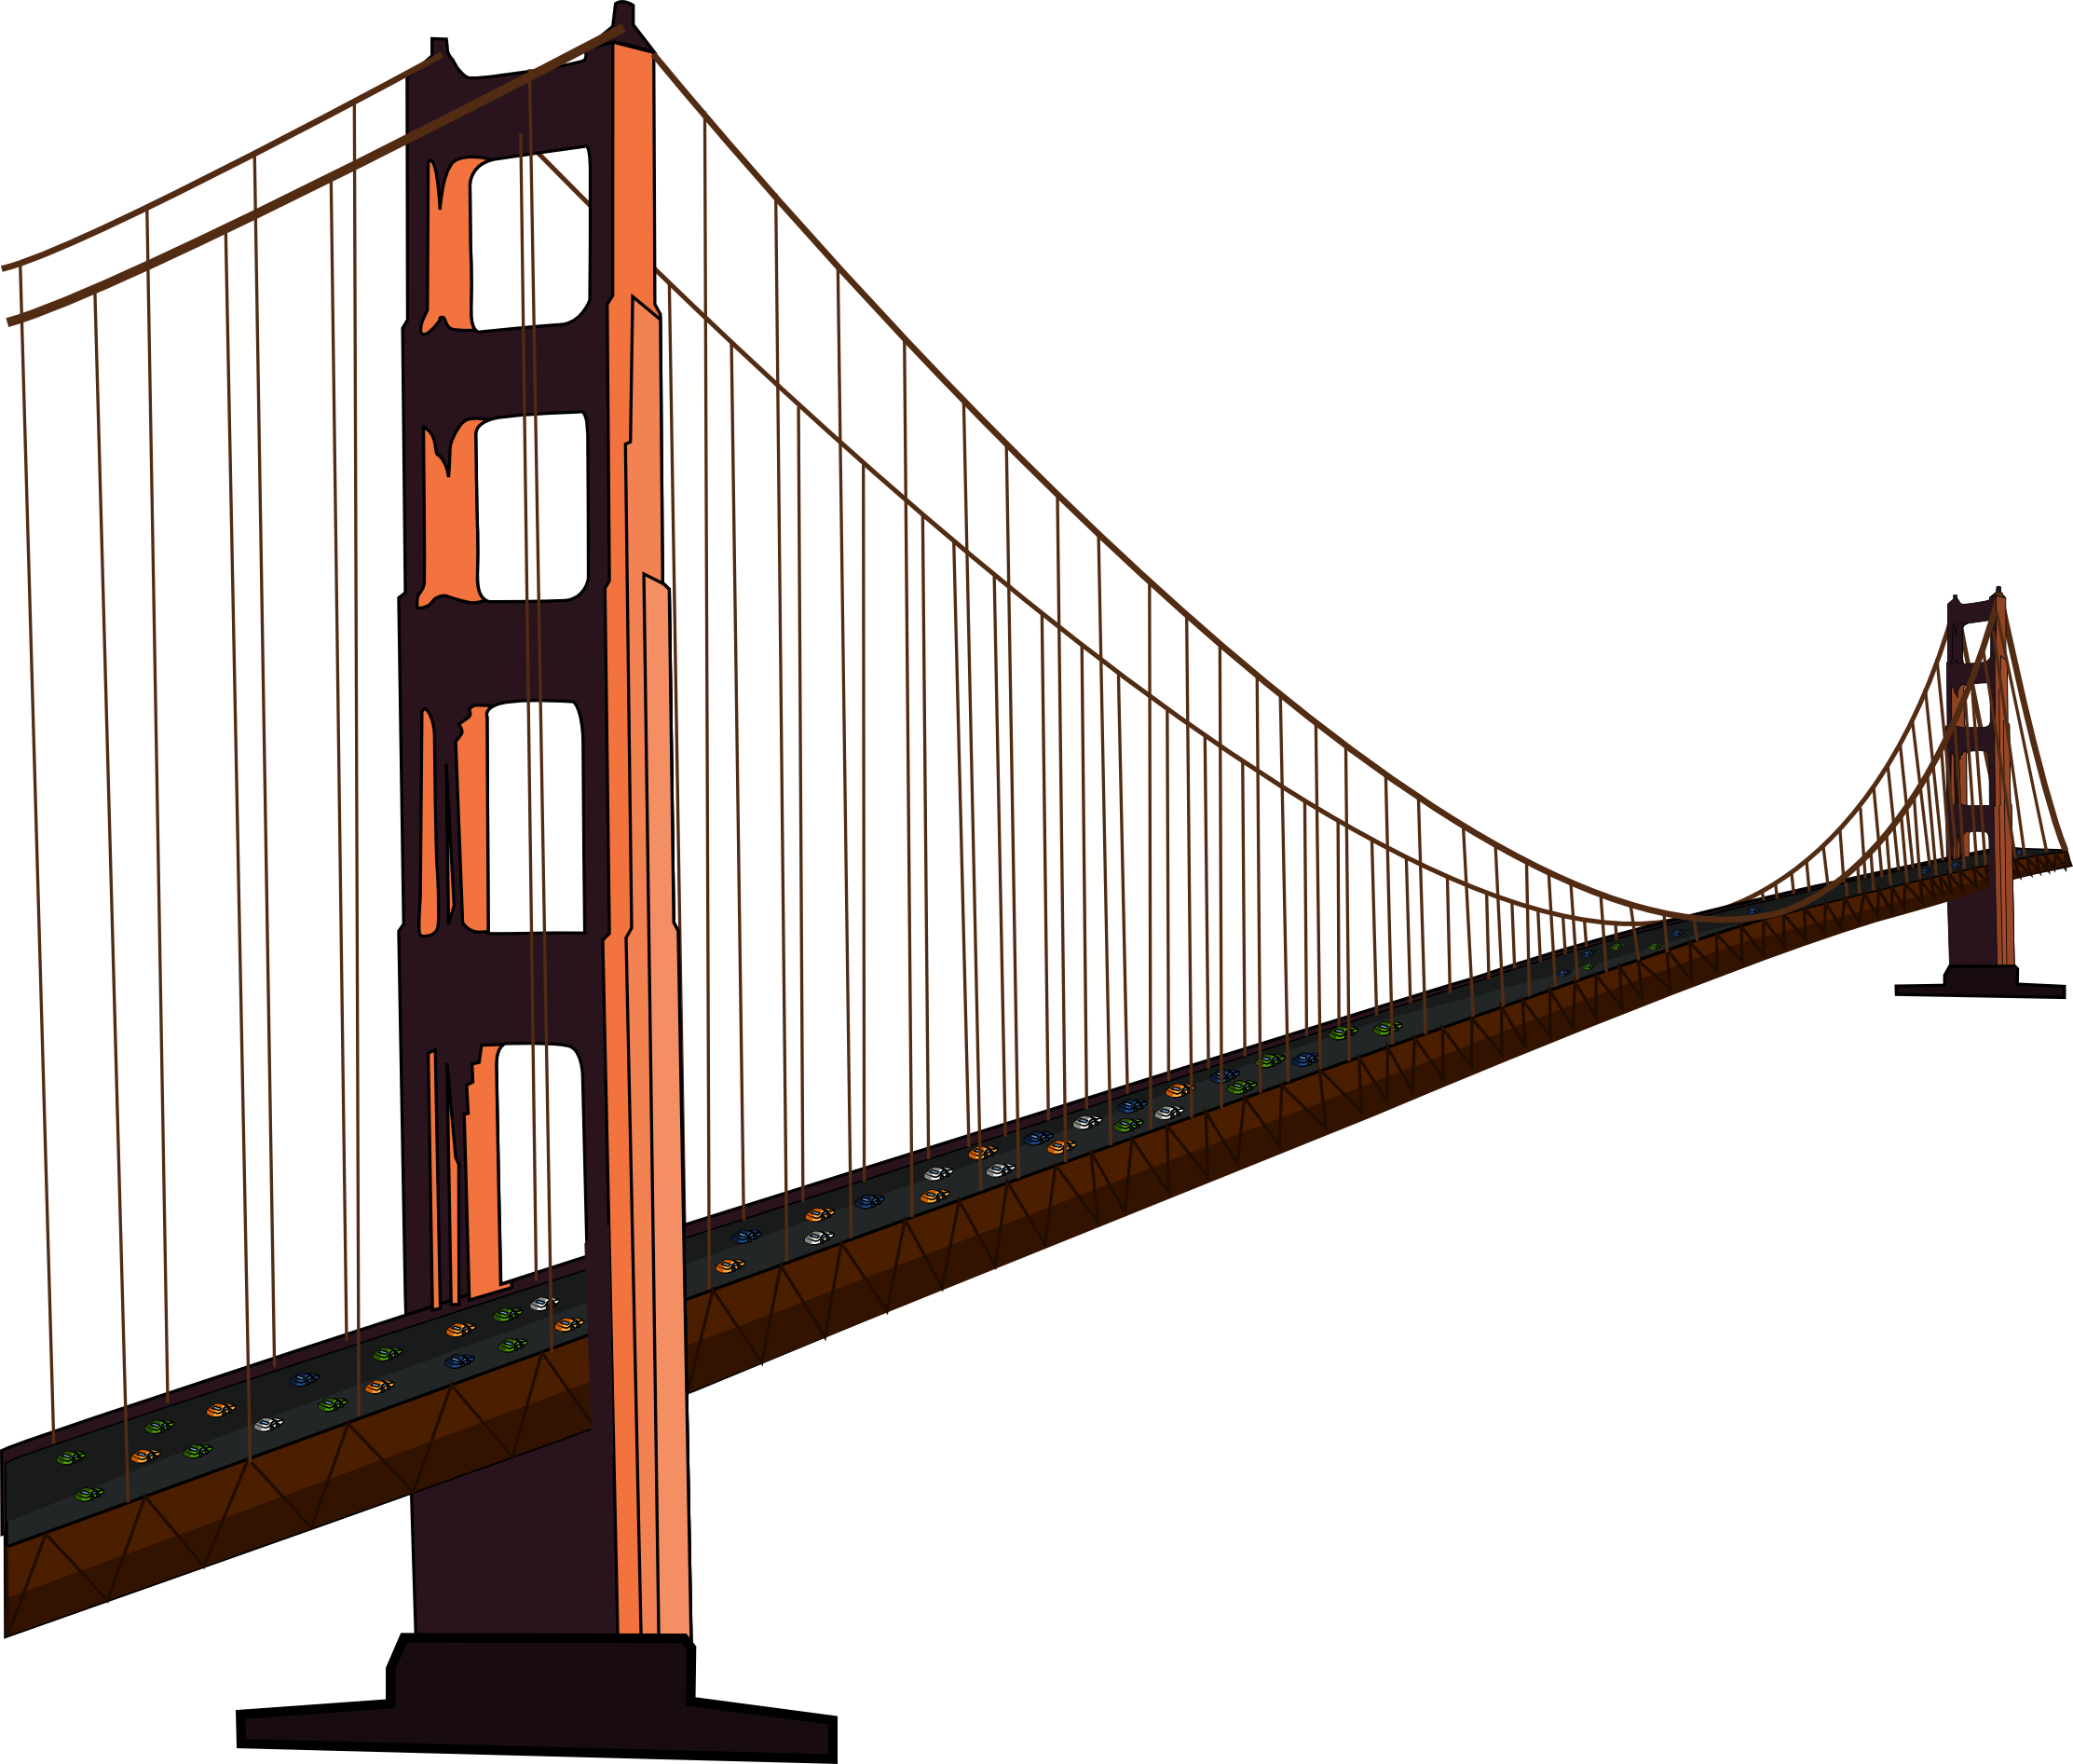 Bridges PNG HD - 131199